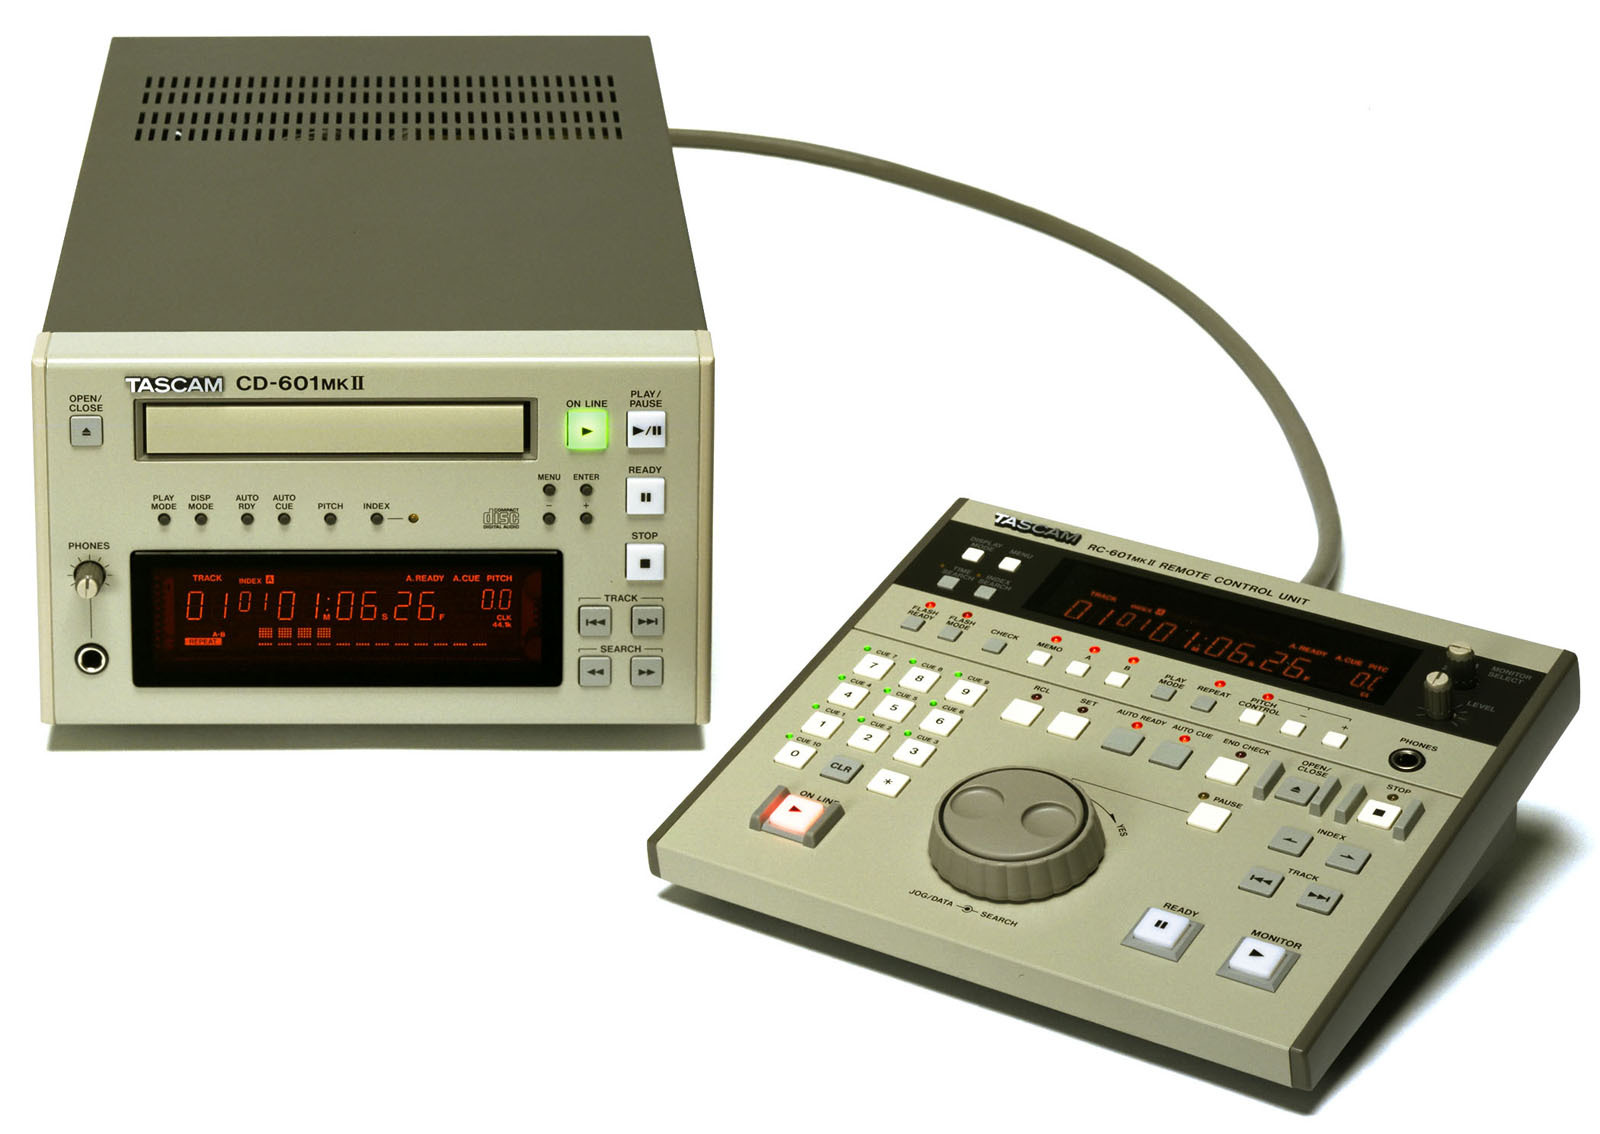 Pictures and images tascam cd-601 mkii audiofanzine.